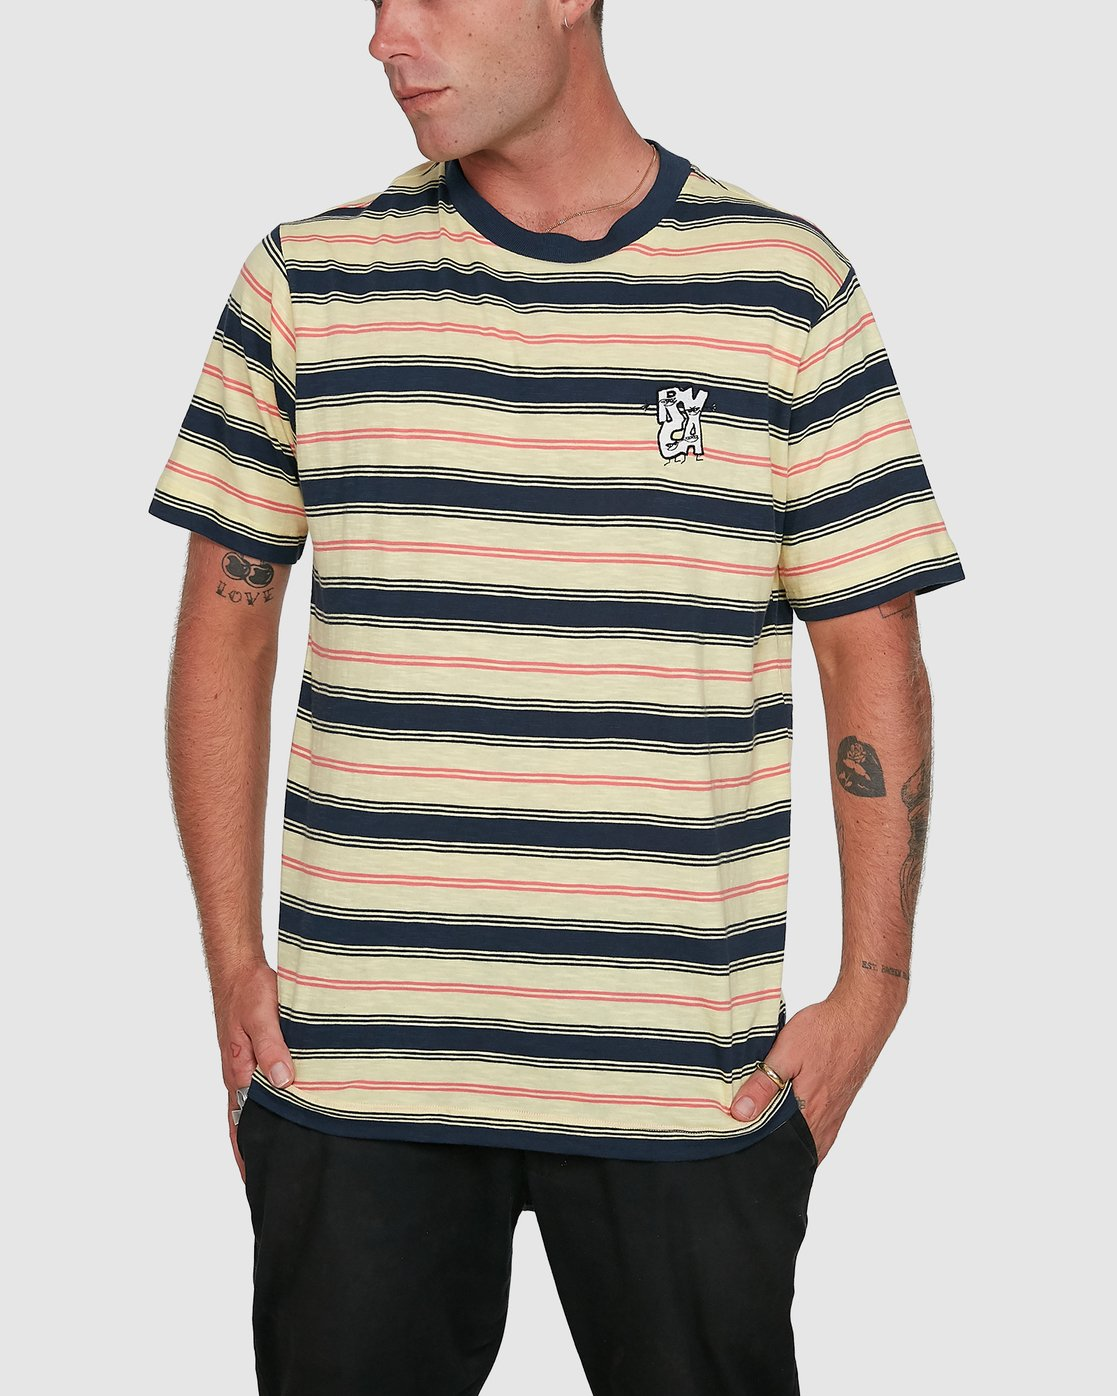 0 Dudes Stripe Short Sleeve Tee Yellow R108050 RVCA